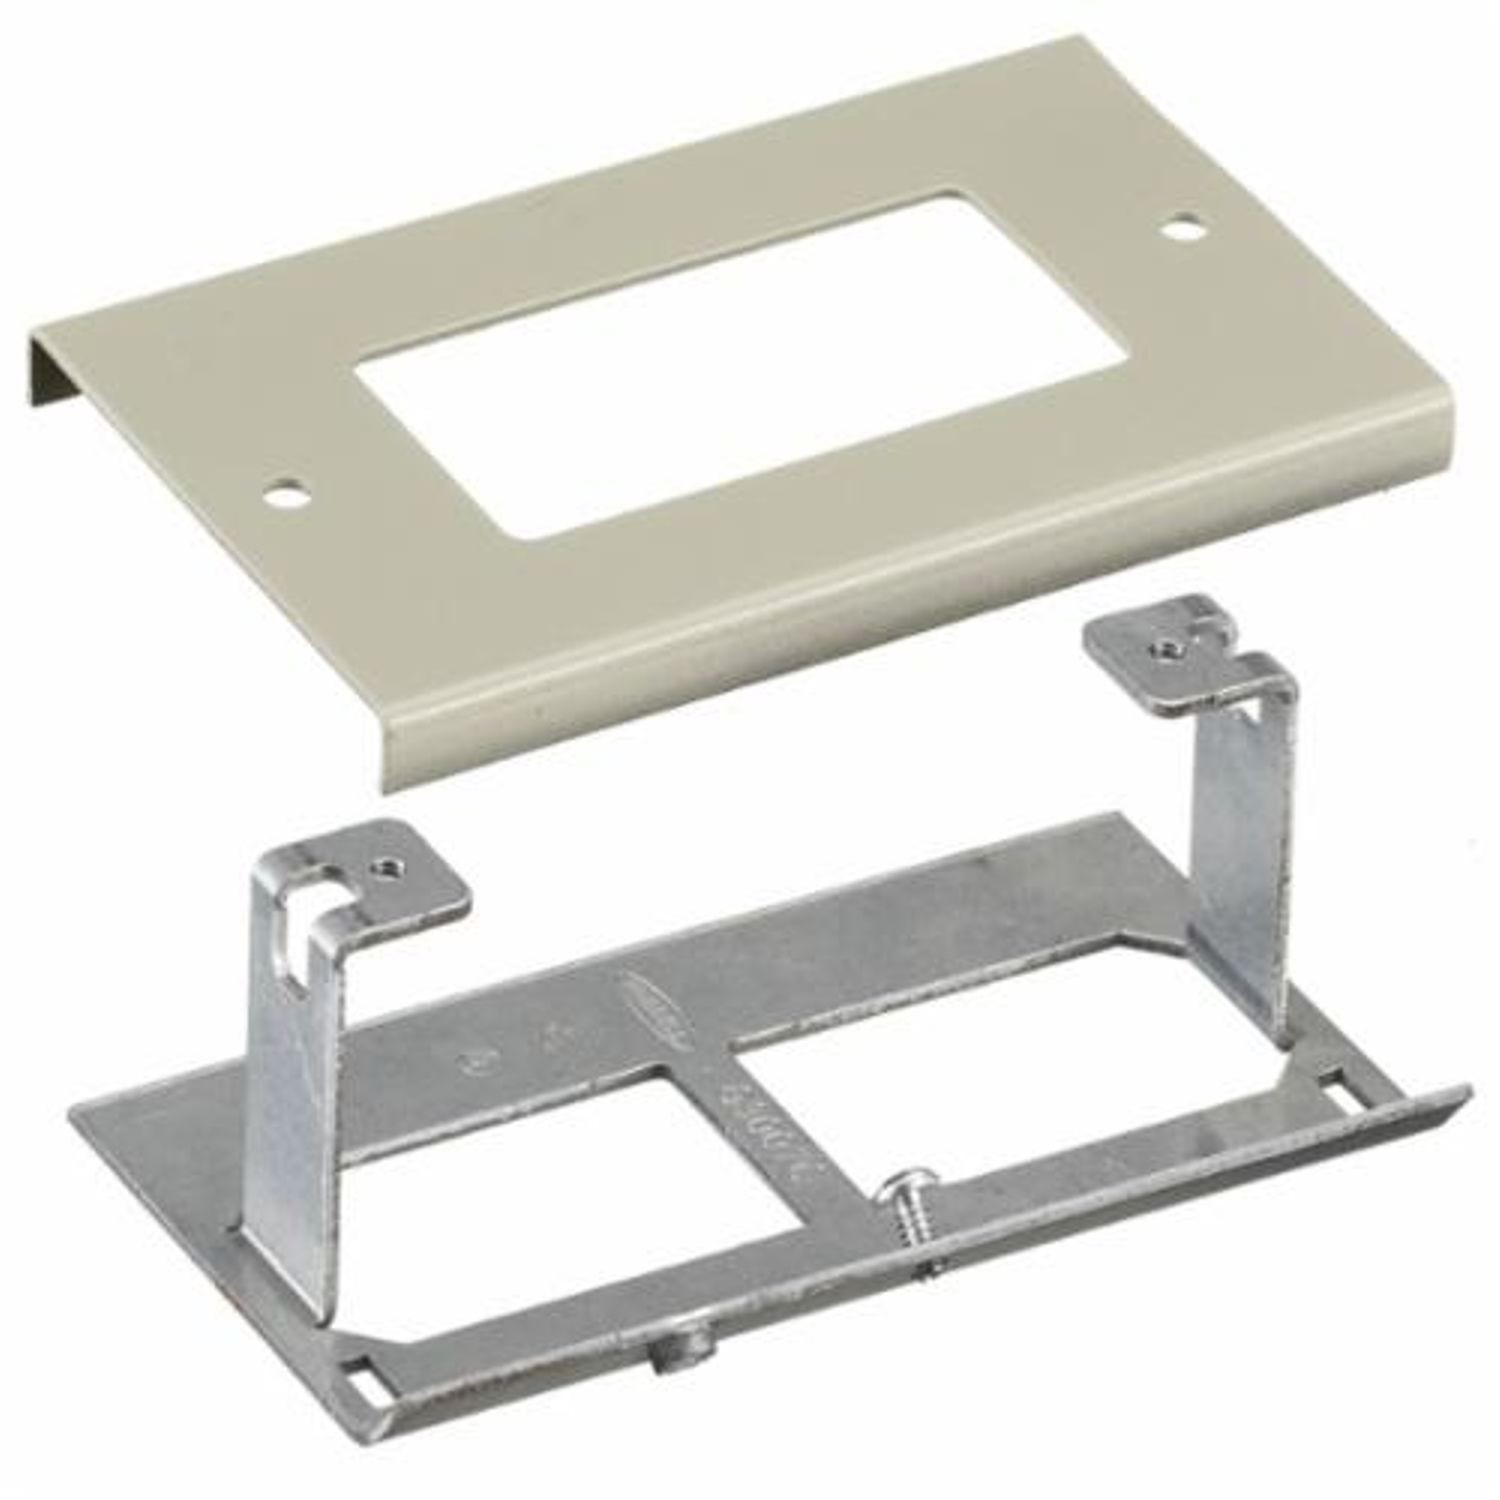 Premise Wiring Style Line Hbl3048riv Decorator Gfci Rectangular Receptacle In Series Standard Cover Plate For Use With Hbl3000 Metal Raceway